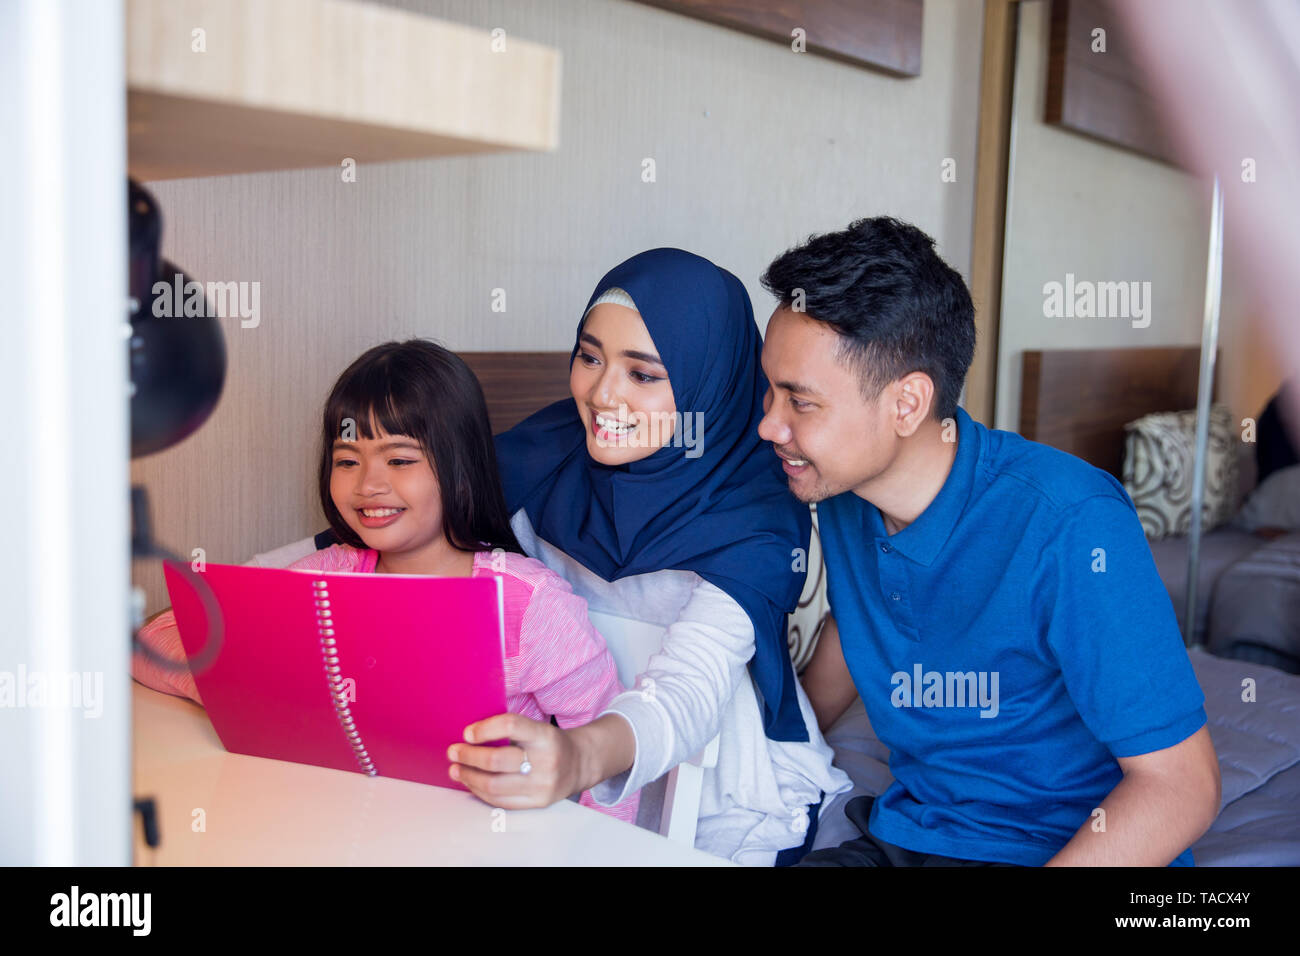 reading a book with family at bedroom together - Stock Image